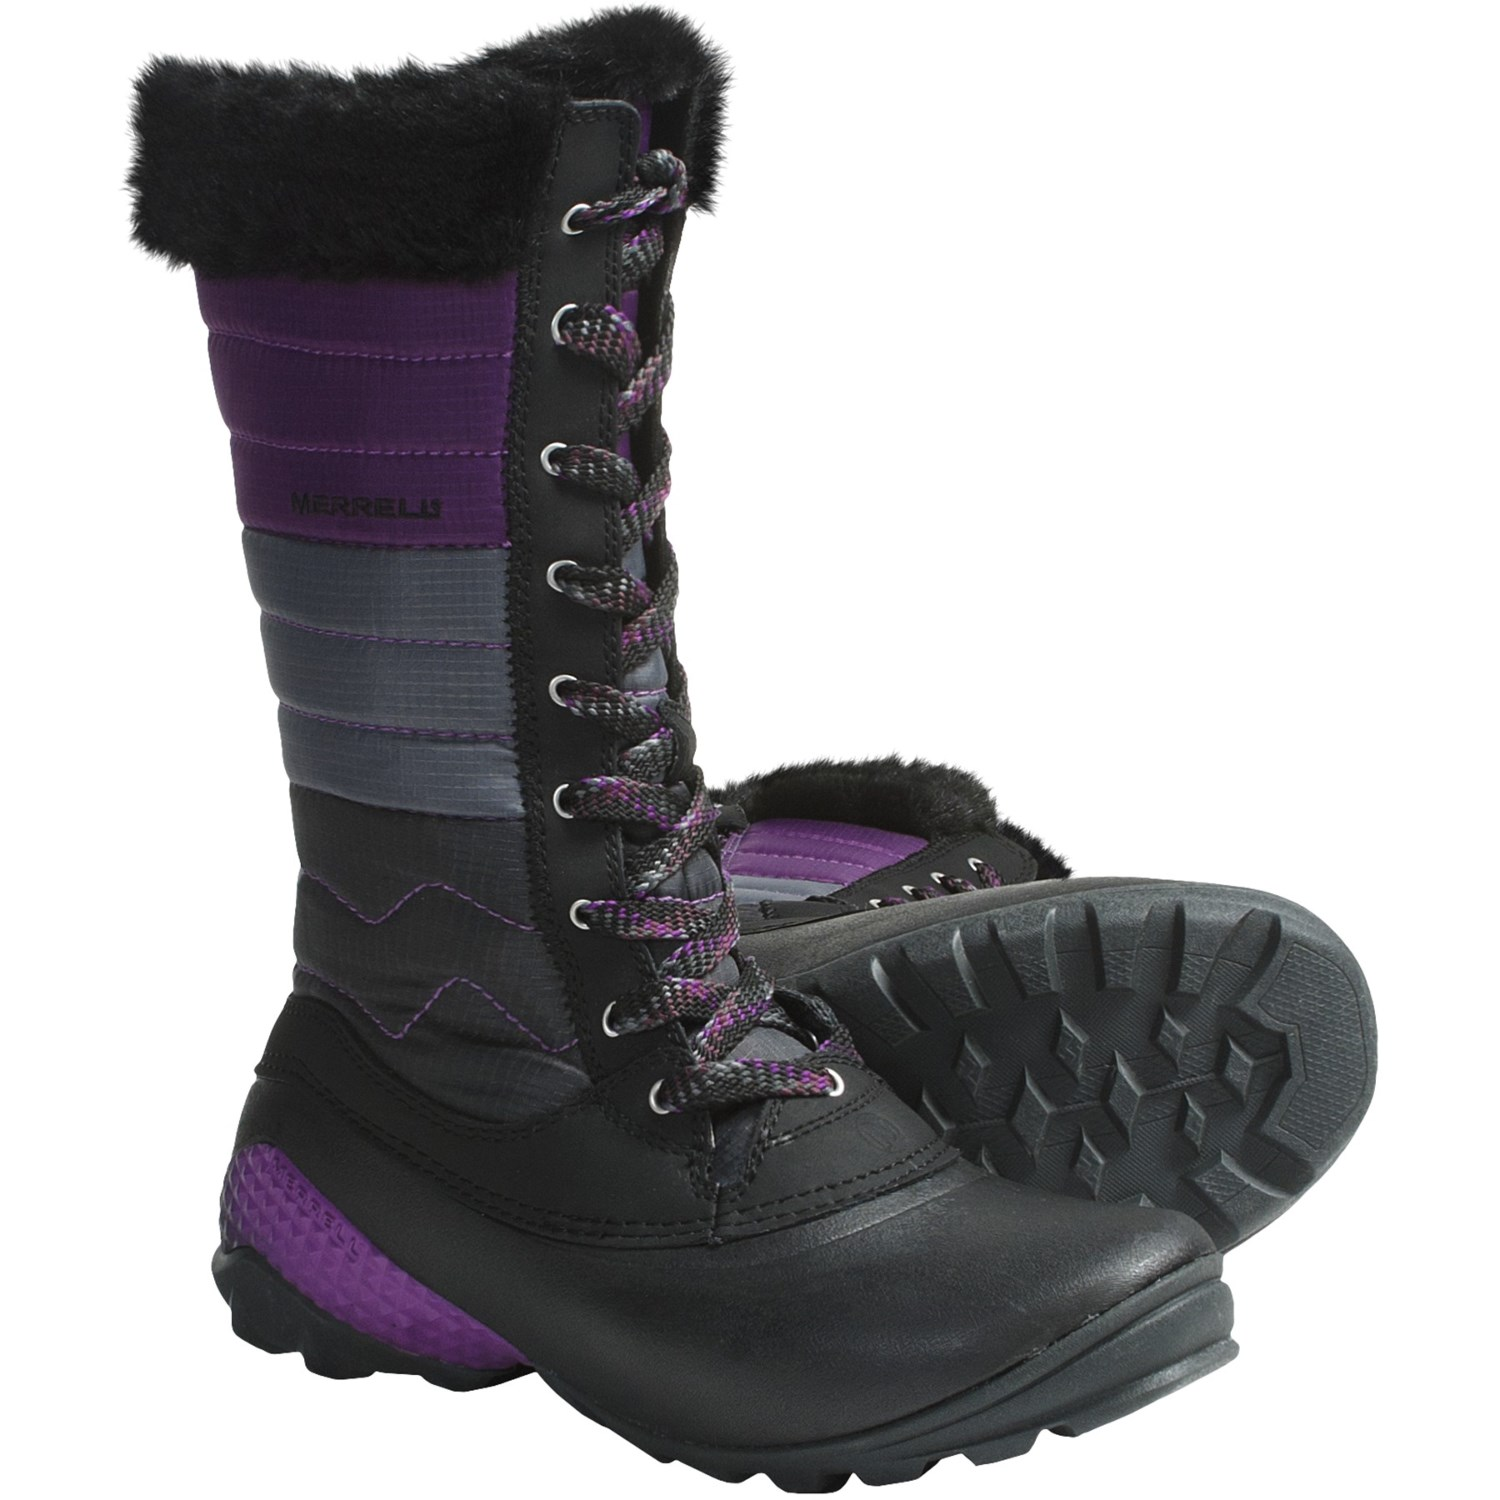 Lastest Find, Compare, Read Reviews &amp Buy Best Walking Shoes For Women Merrell  Want To See Your Products In Yahoo Shopping? Advertise With Us  Sitemap  All Brands